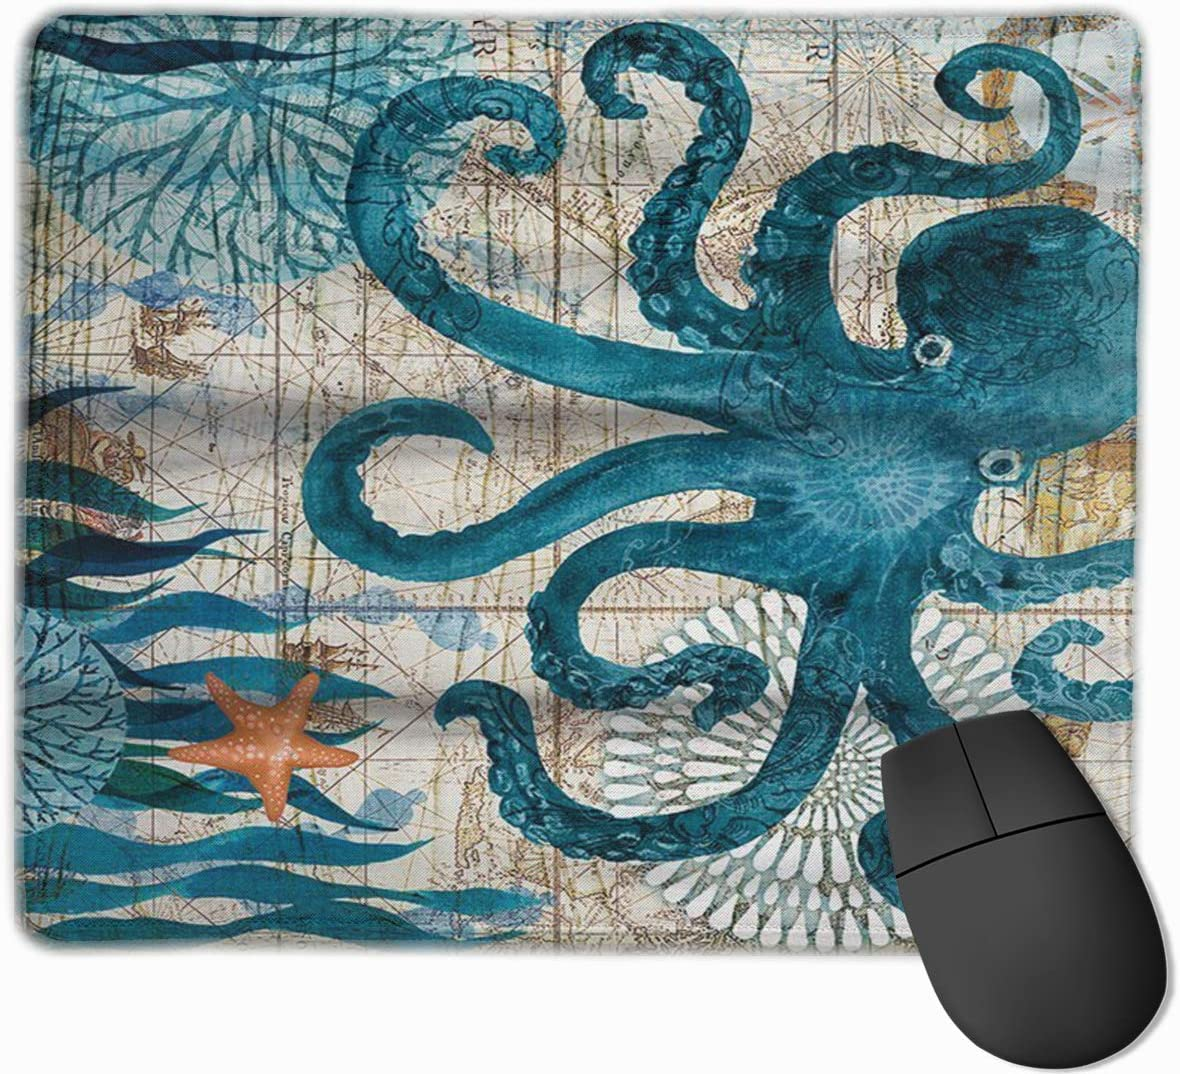 Mouse Pad with Design Retro Octopus Print for Computer Office Gaming